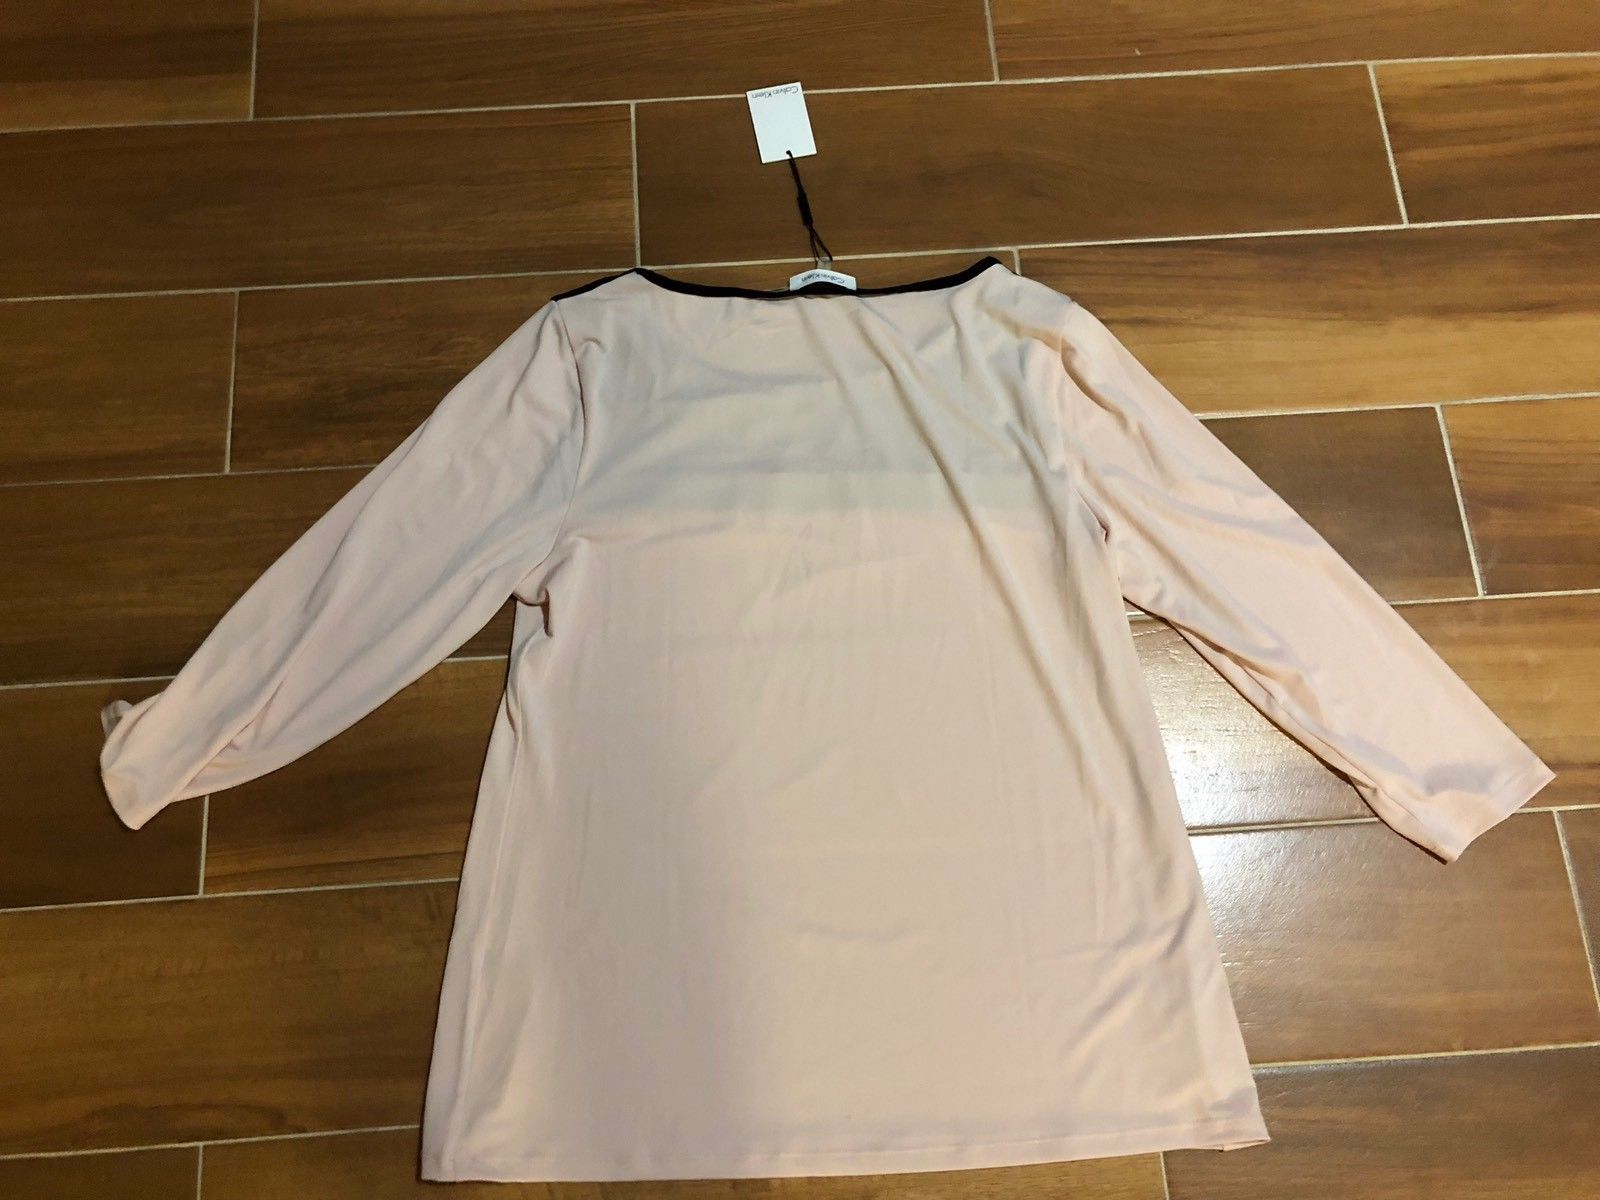 Calvin Klein Women's Top with Mesh Inset Size L